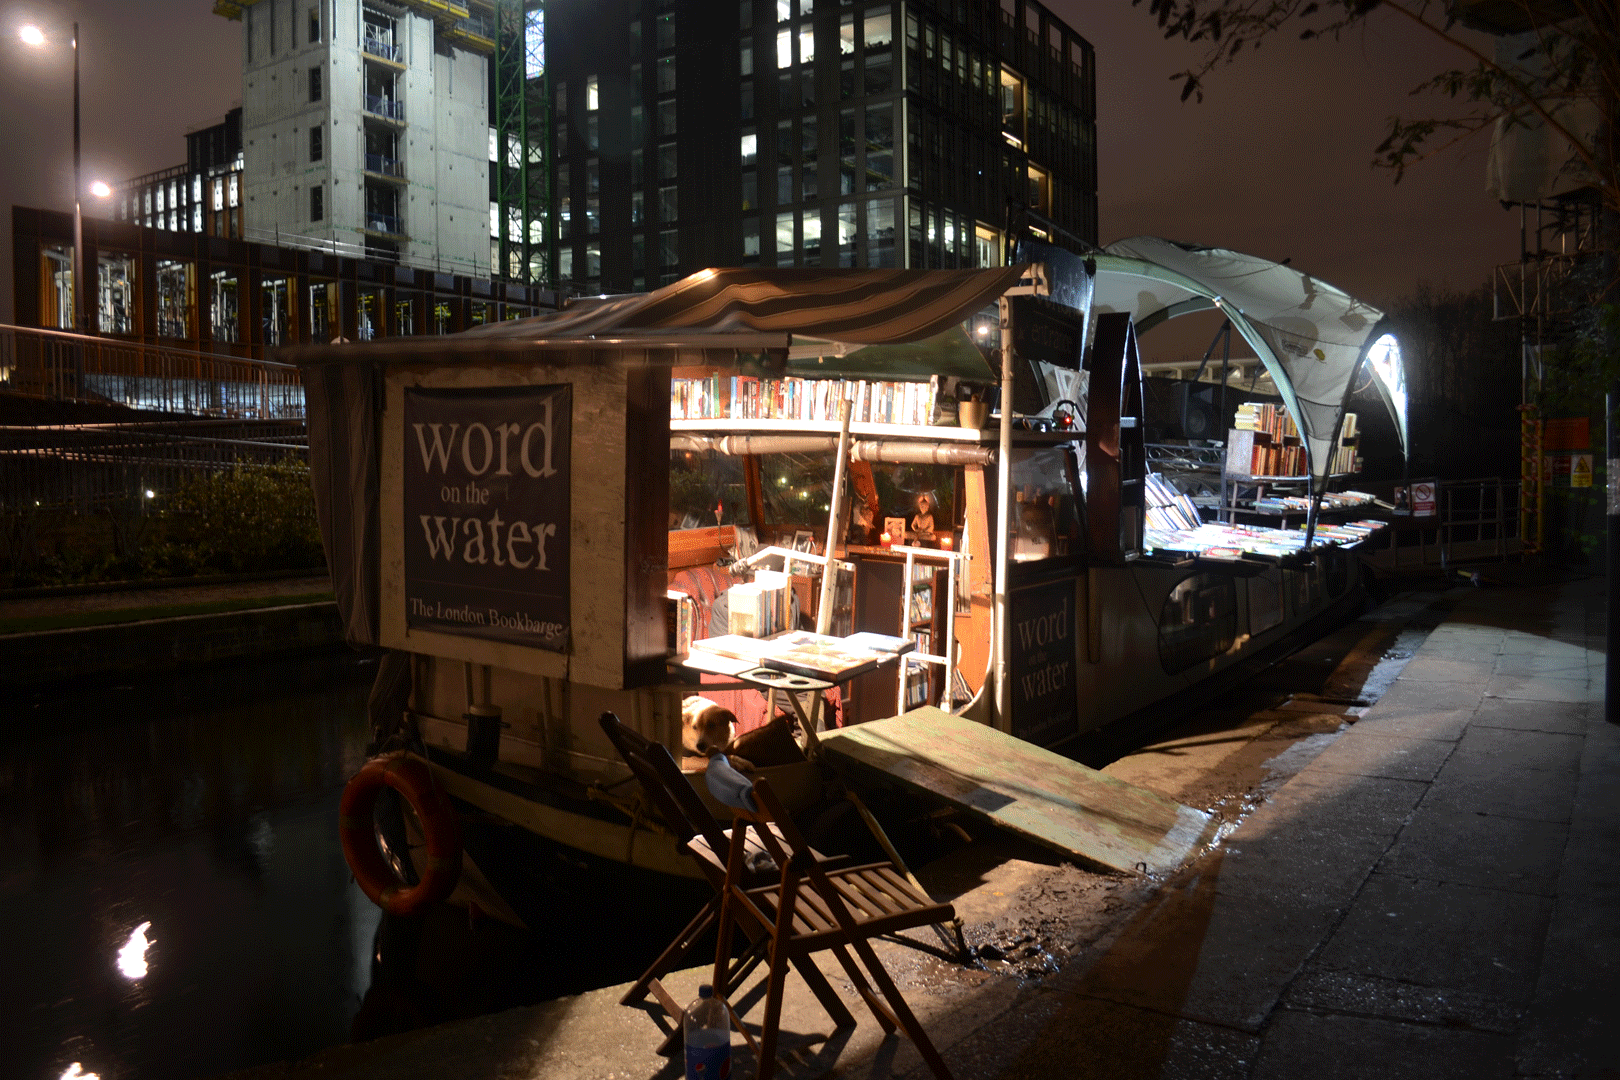 Word On The Water - The London Bookbarge